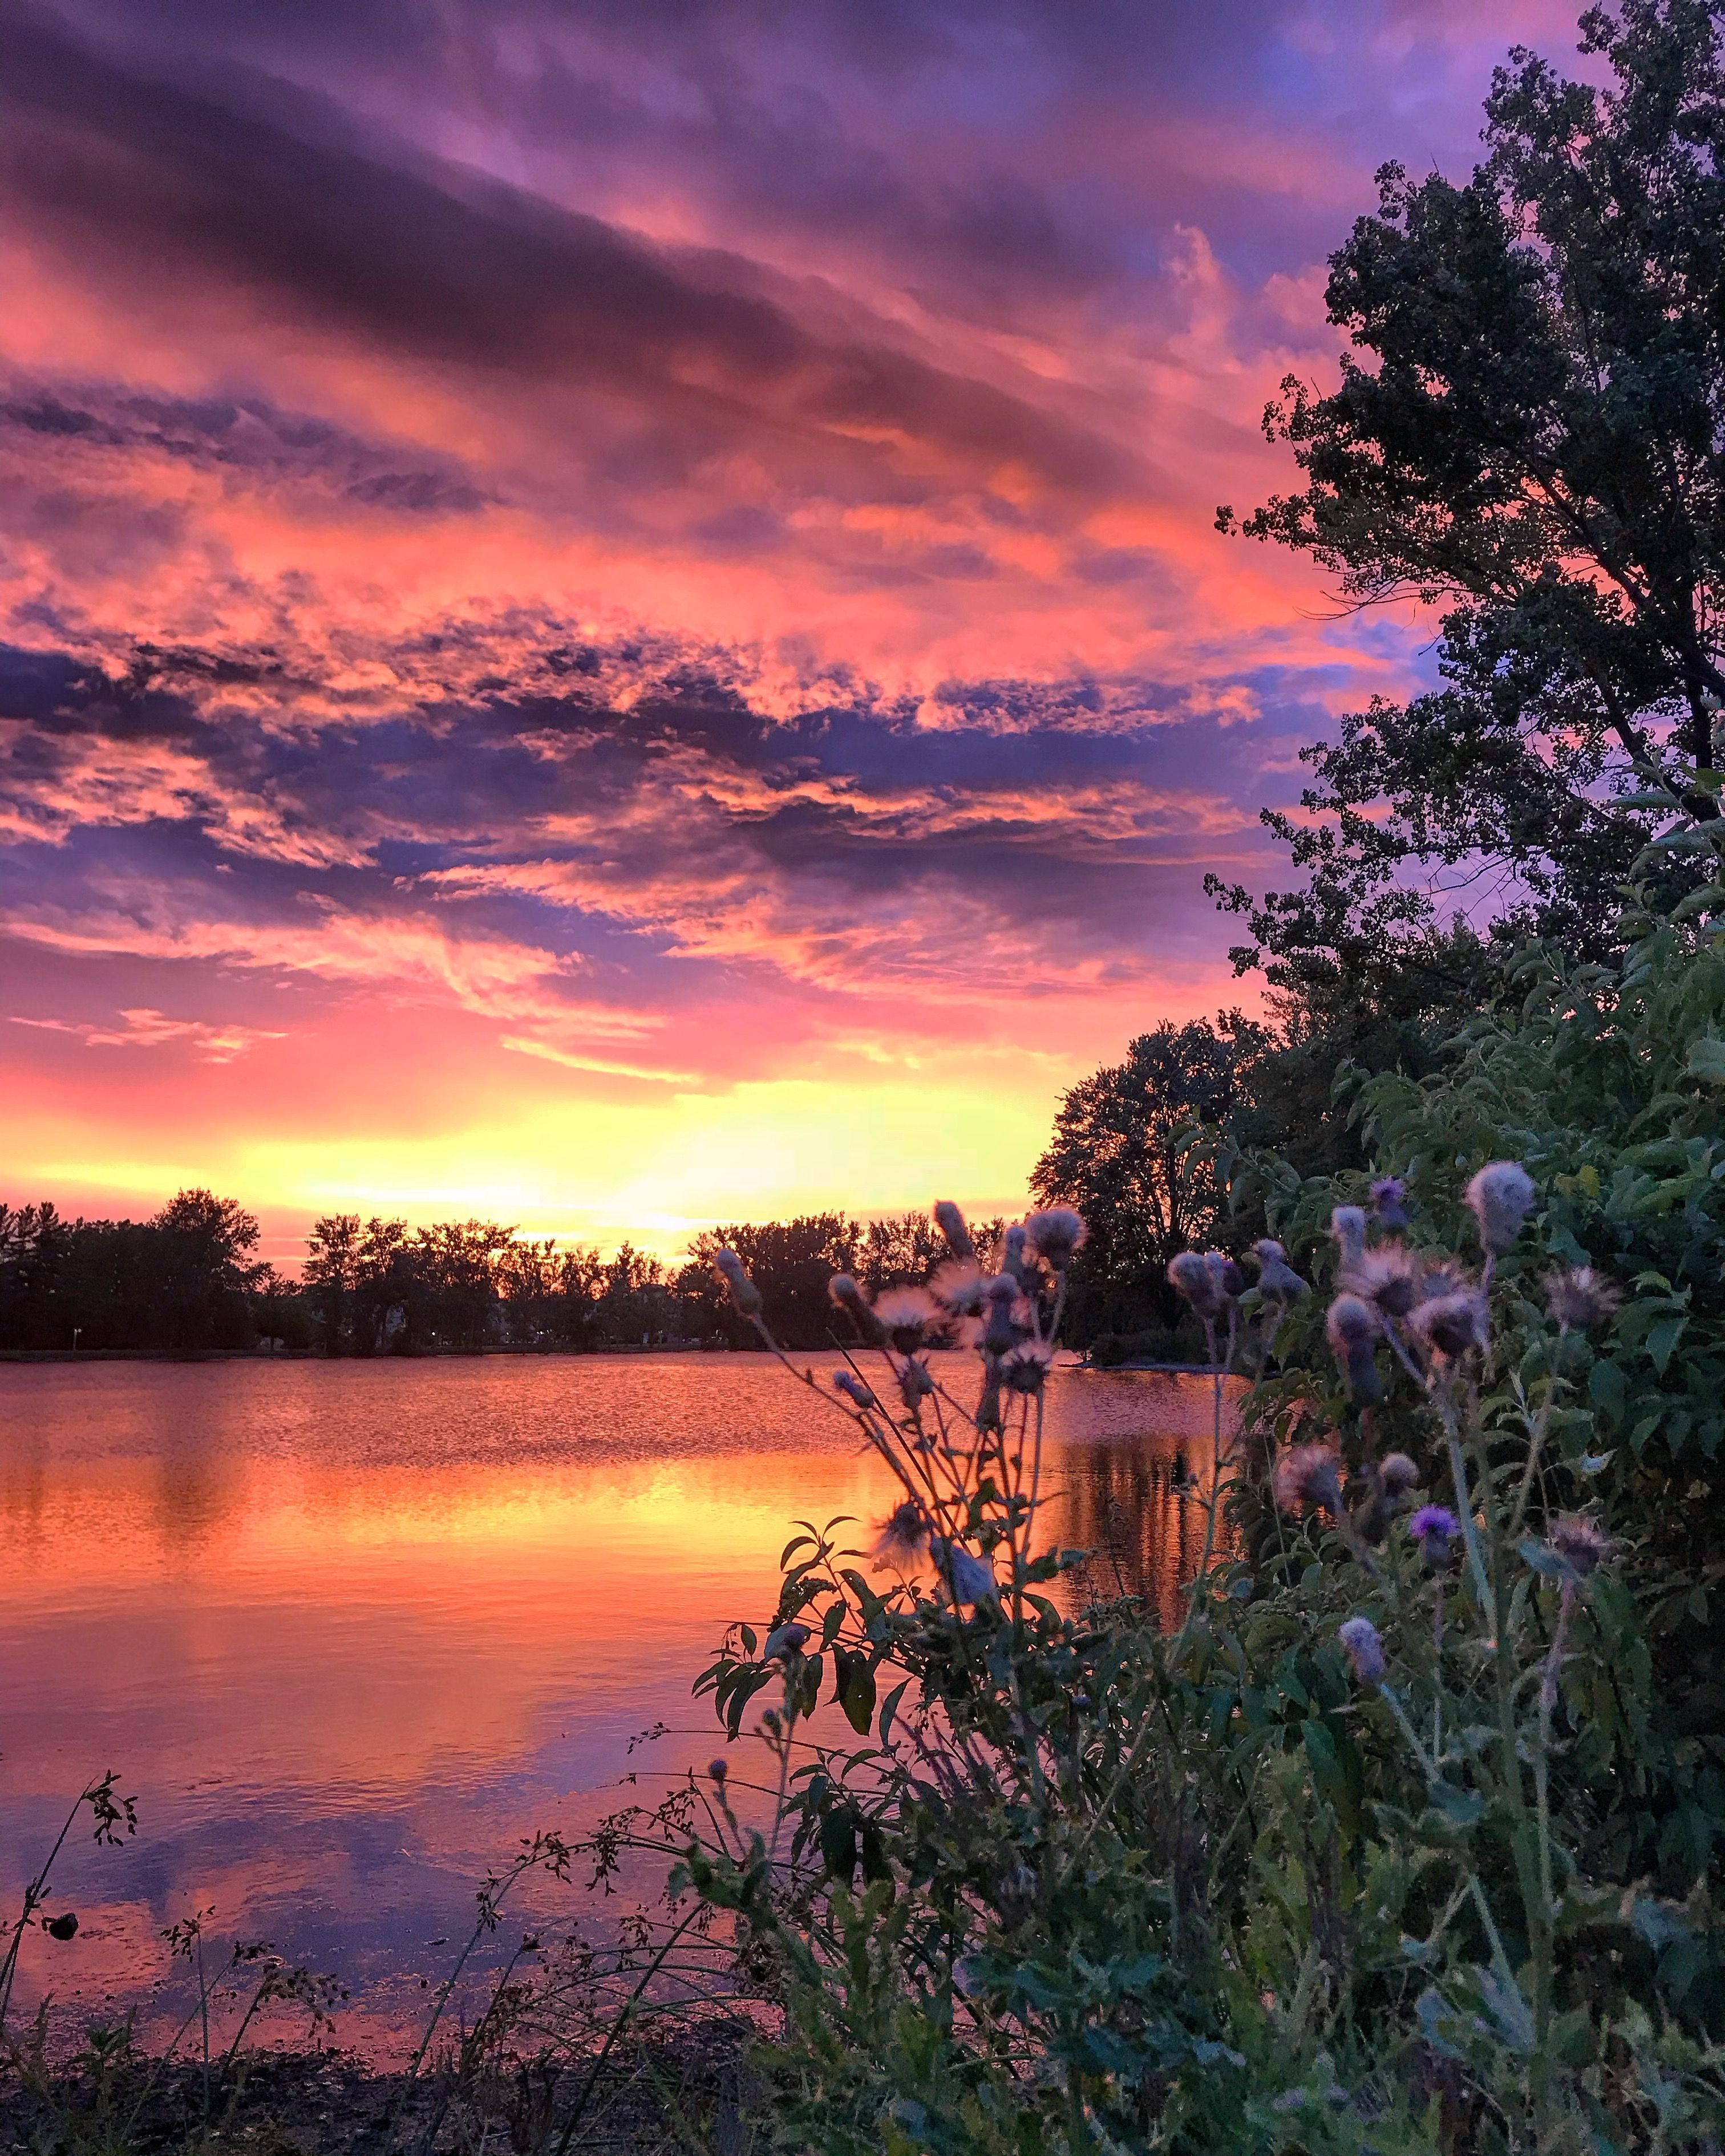 Stunning Sunset In Upstate New York In Late July Landscape Photography Fine Art Landscape Photography Nature Photography